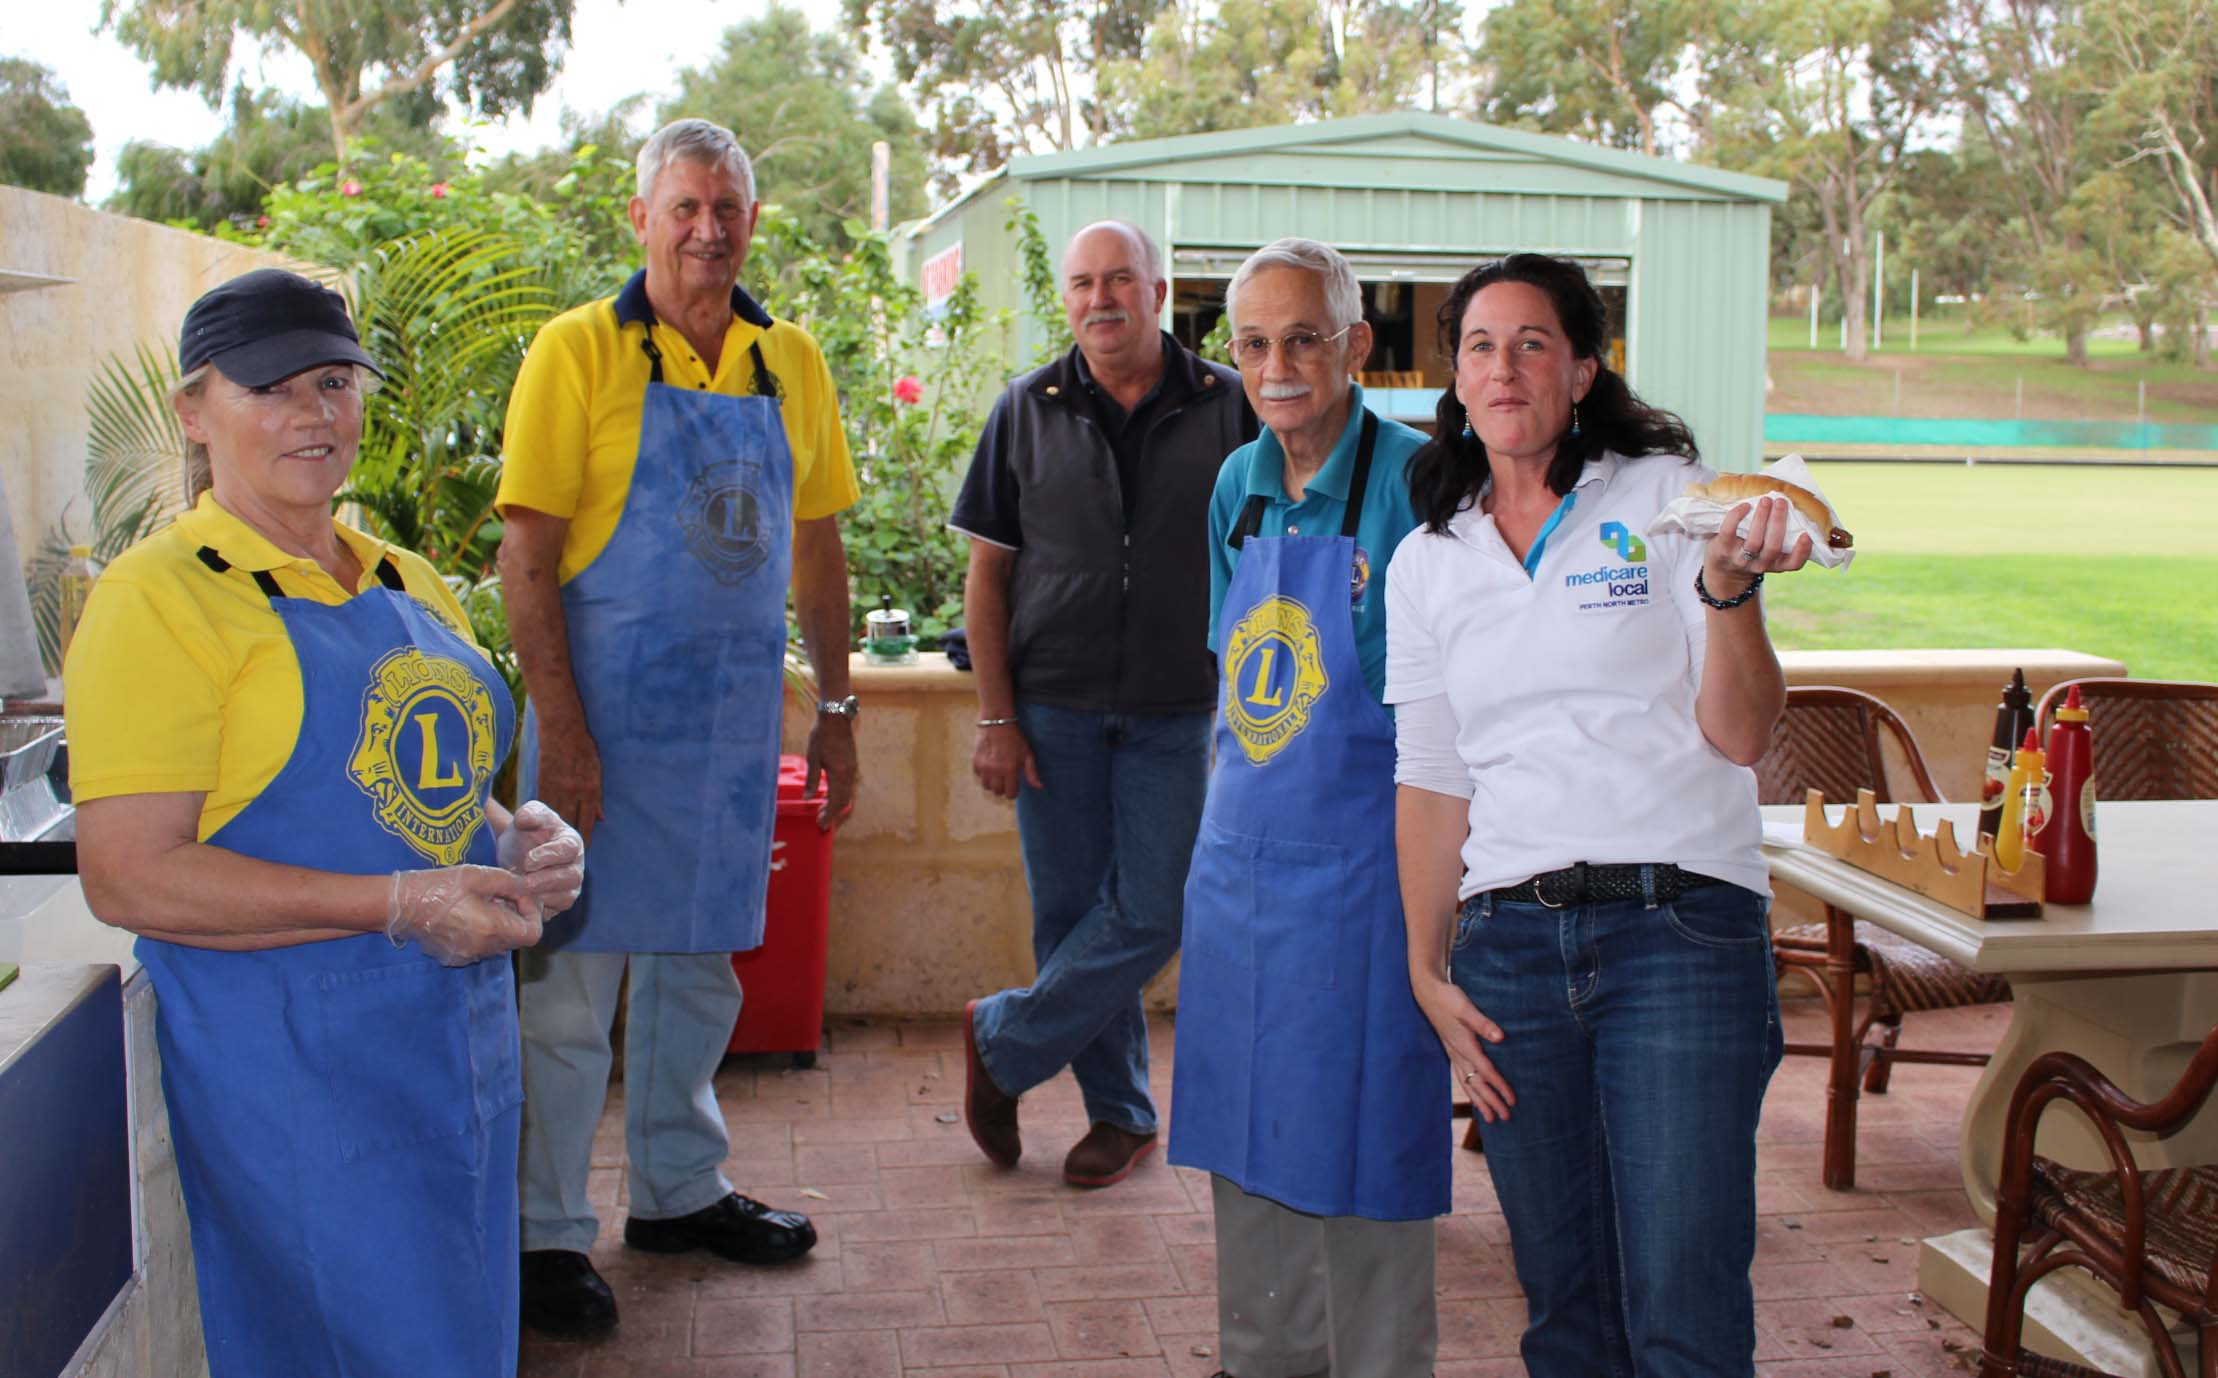 The Lions Club cooked up a delicious barbecue at the Sorrento Bowling Club in Duncraig.